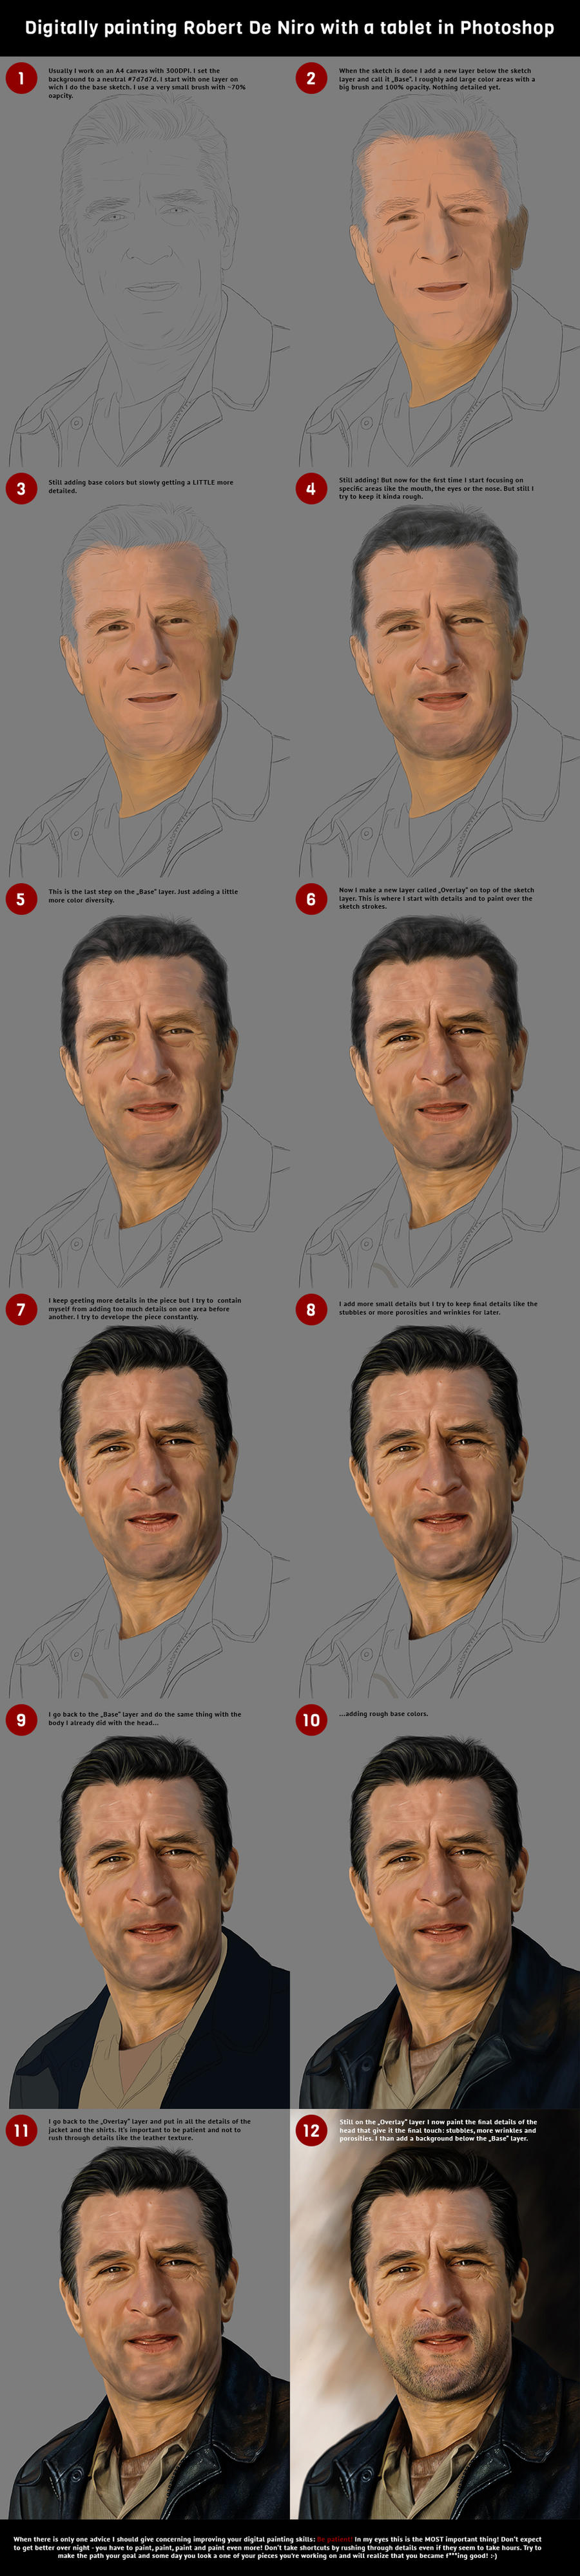 Step-by-step Digital Painting: Robert De Niro by 5IC